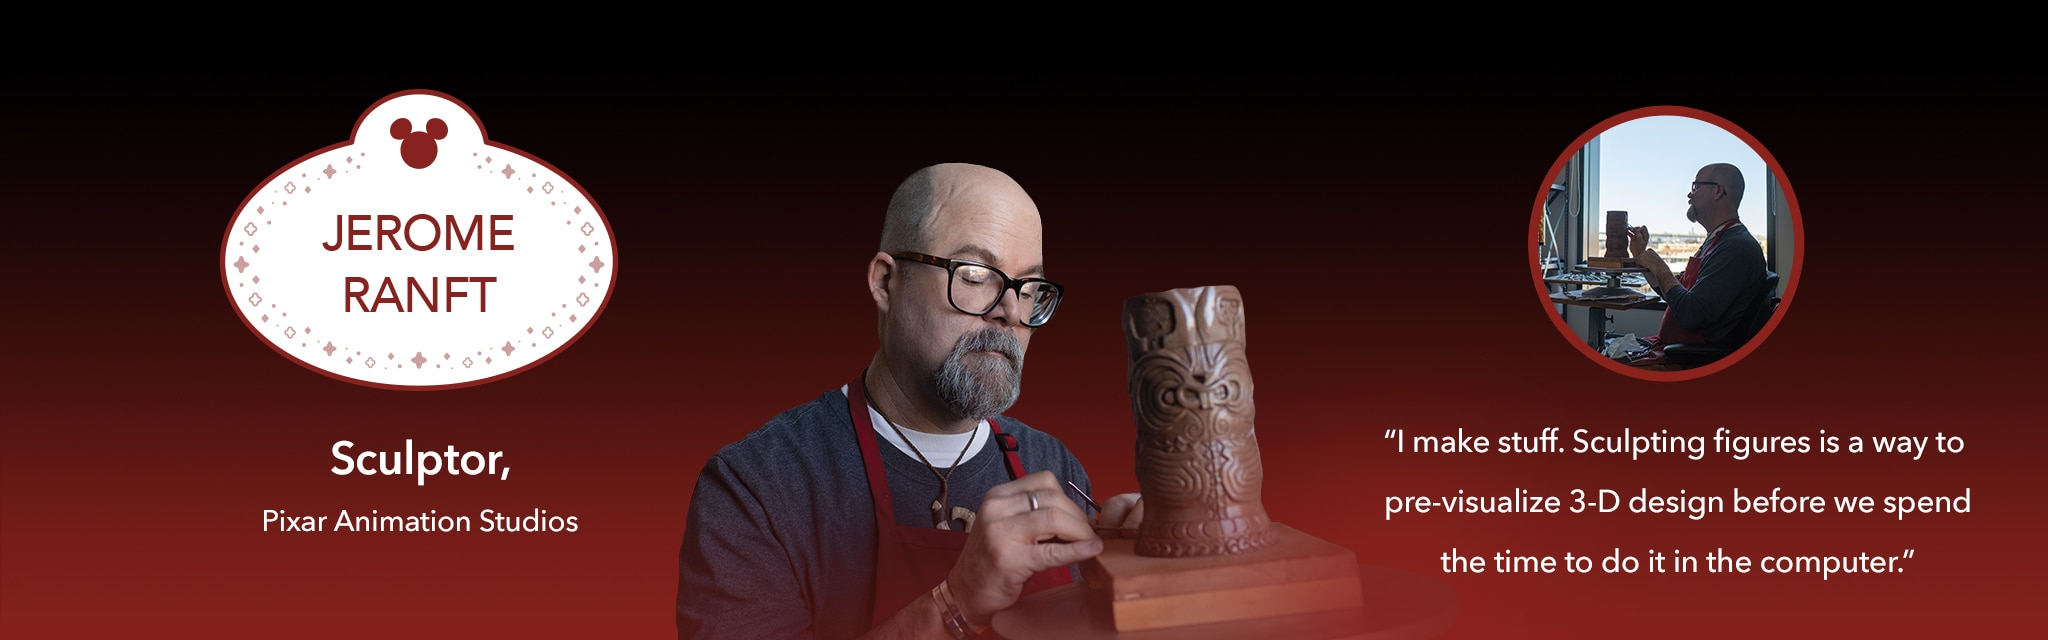 Jerome Ranft, Sculptor, Pixar Animation Studios: I make stuff. Sculpting figures is a way to pre-visualize 3-D design before we spend the time to do it in the computer.